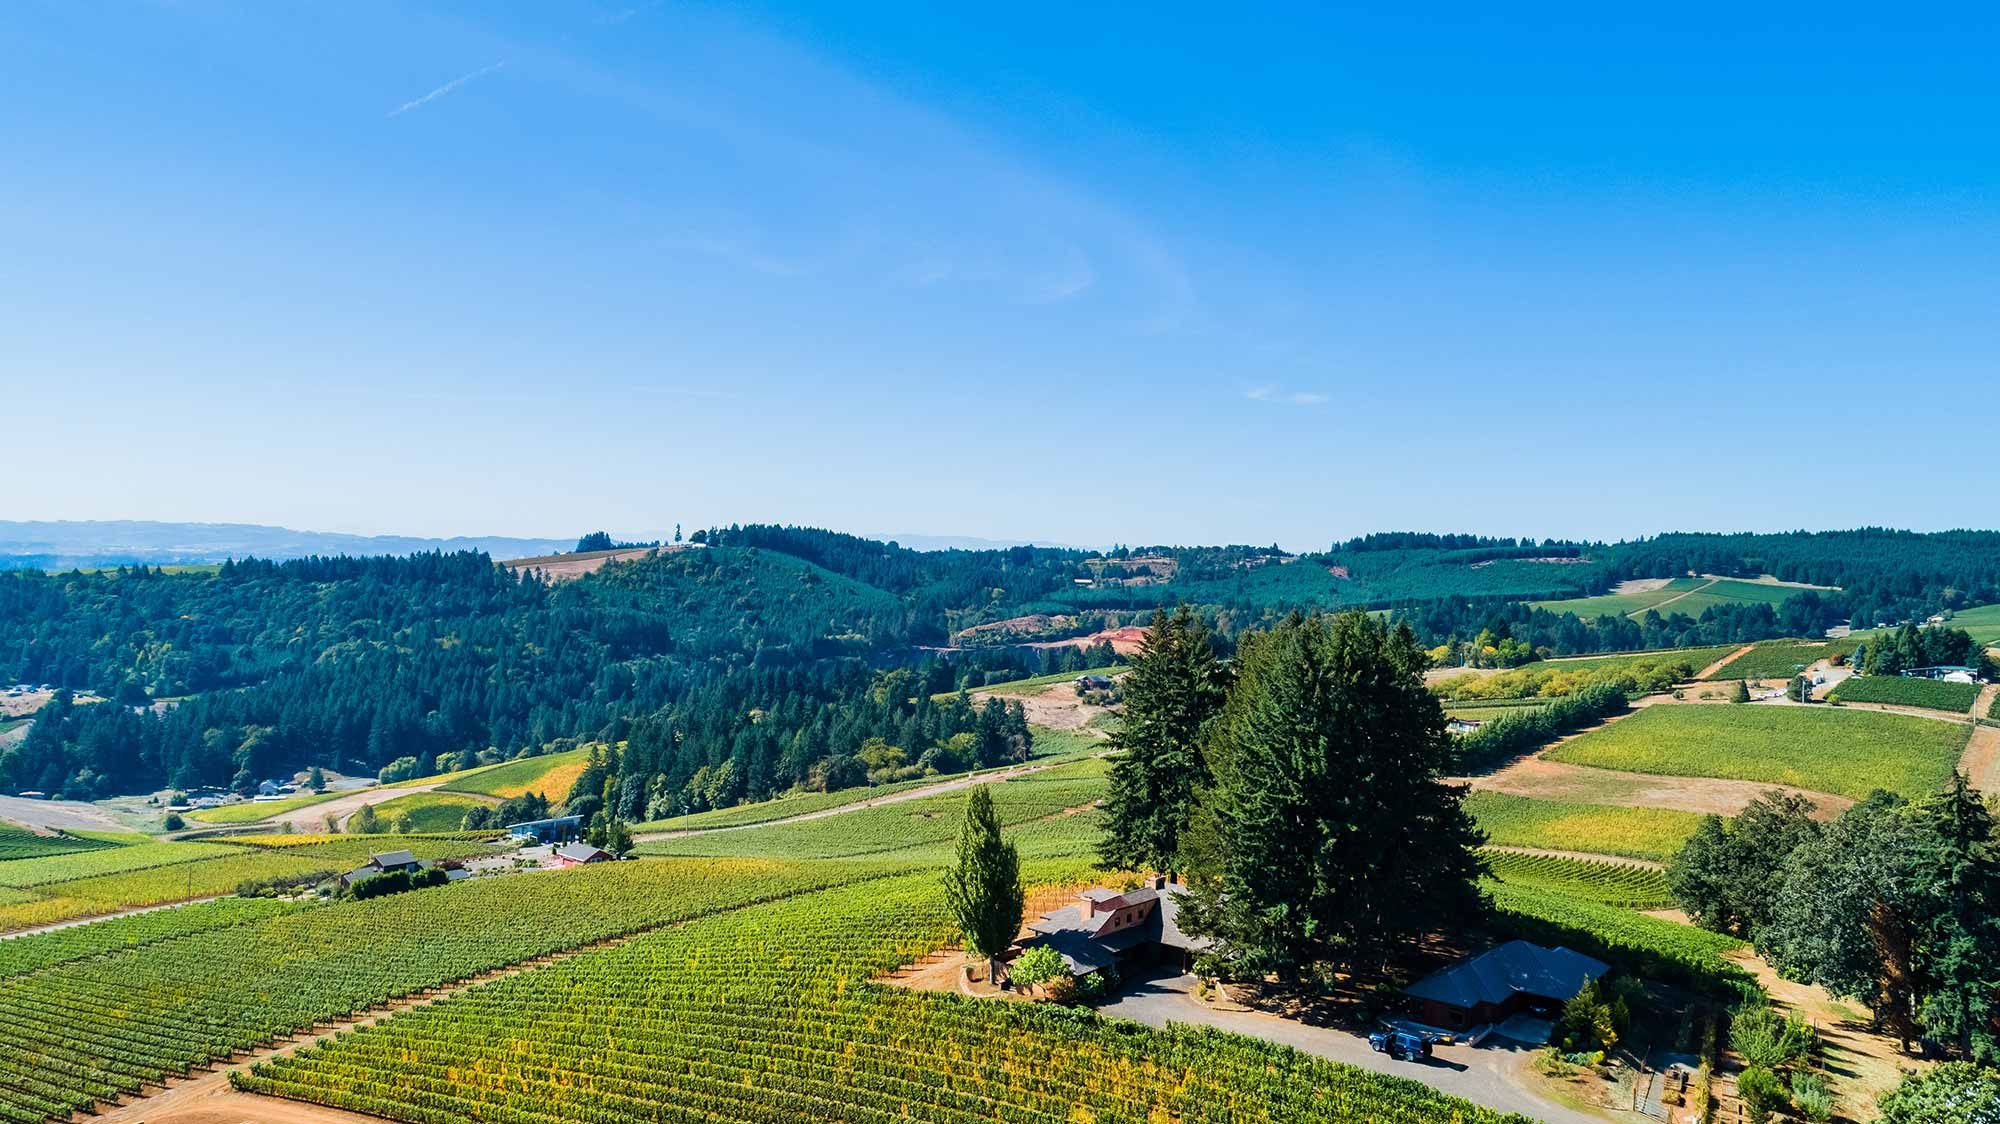 Twomey Dundee, Willamette Valley